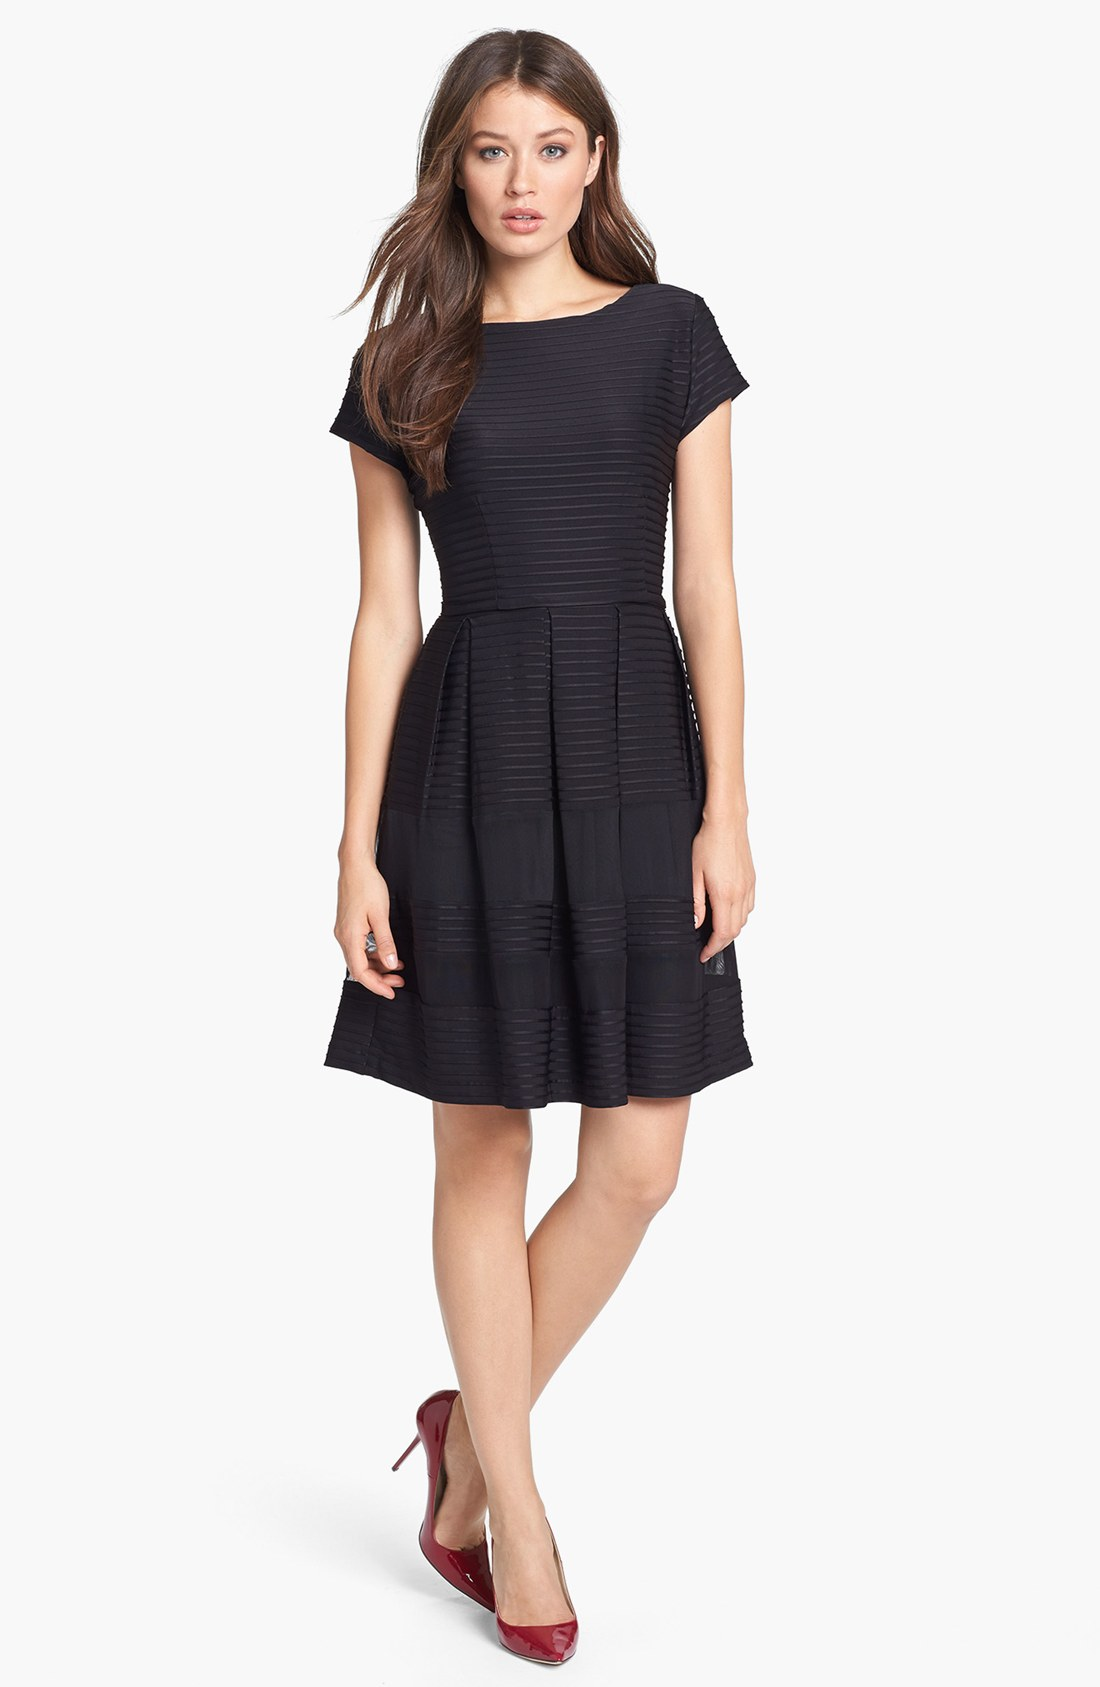 Taylor Dresses Pintuck Fit Flare Dress In Black Lyst